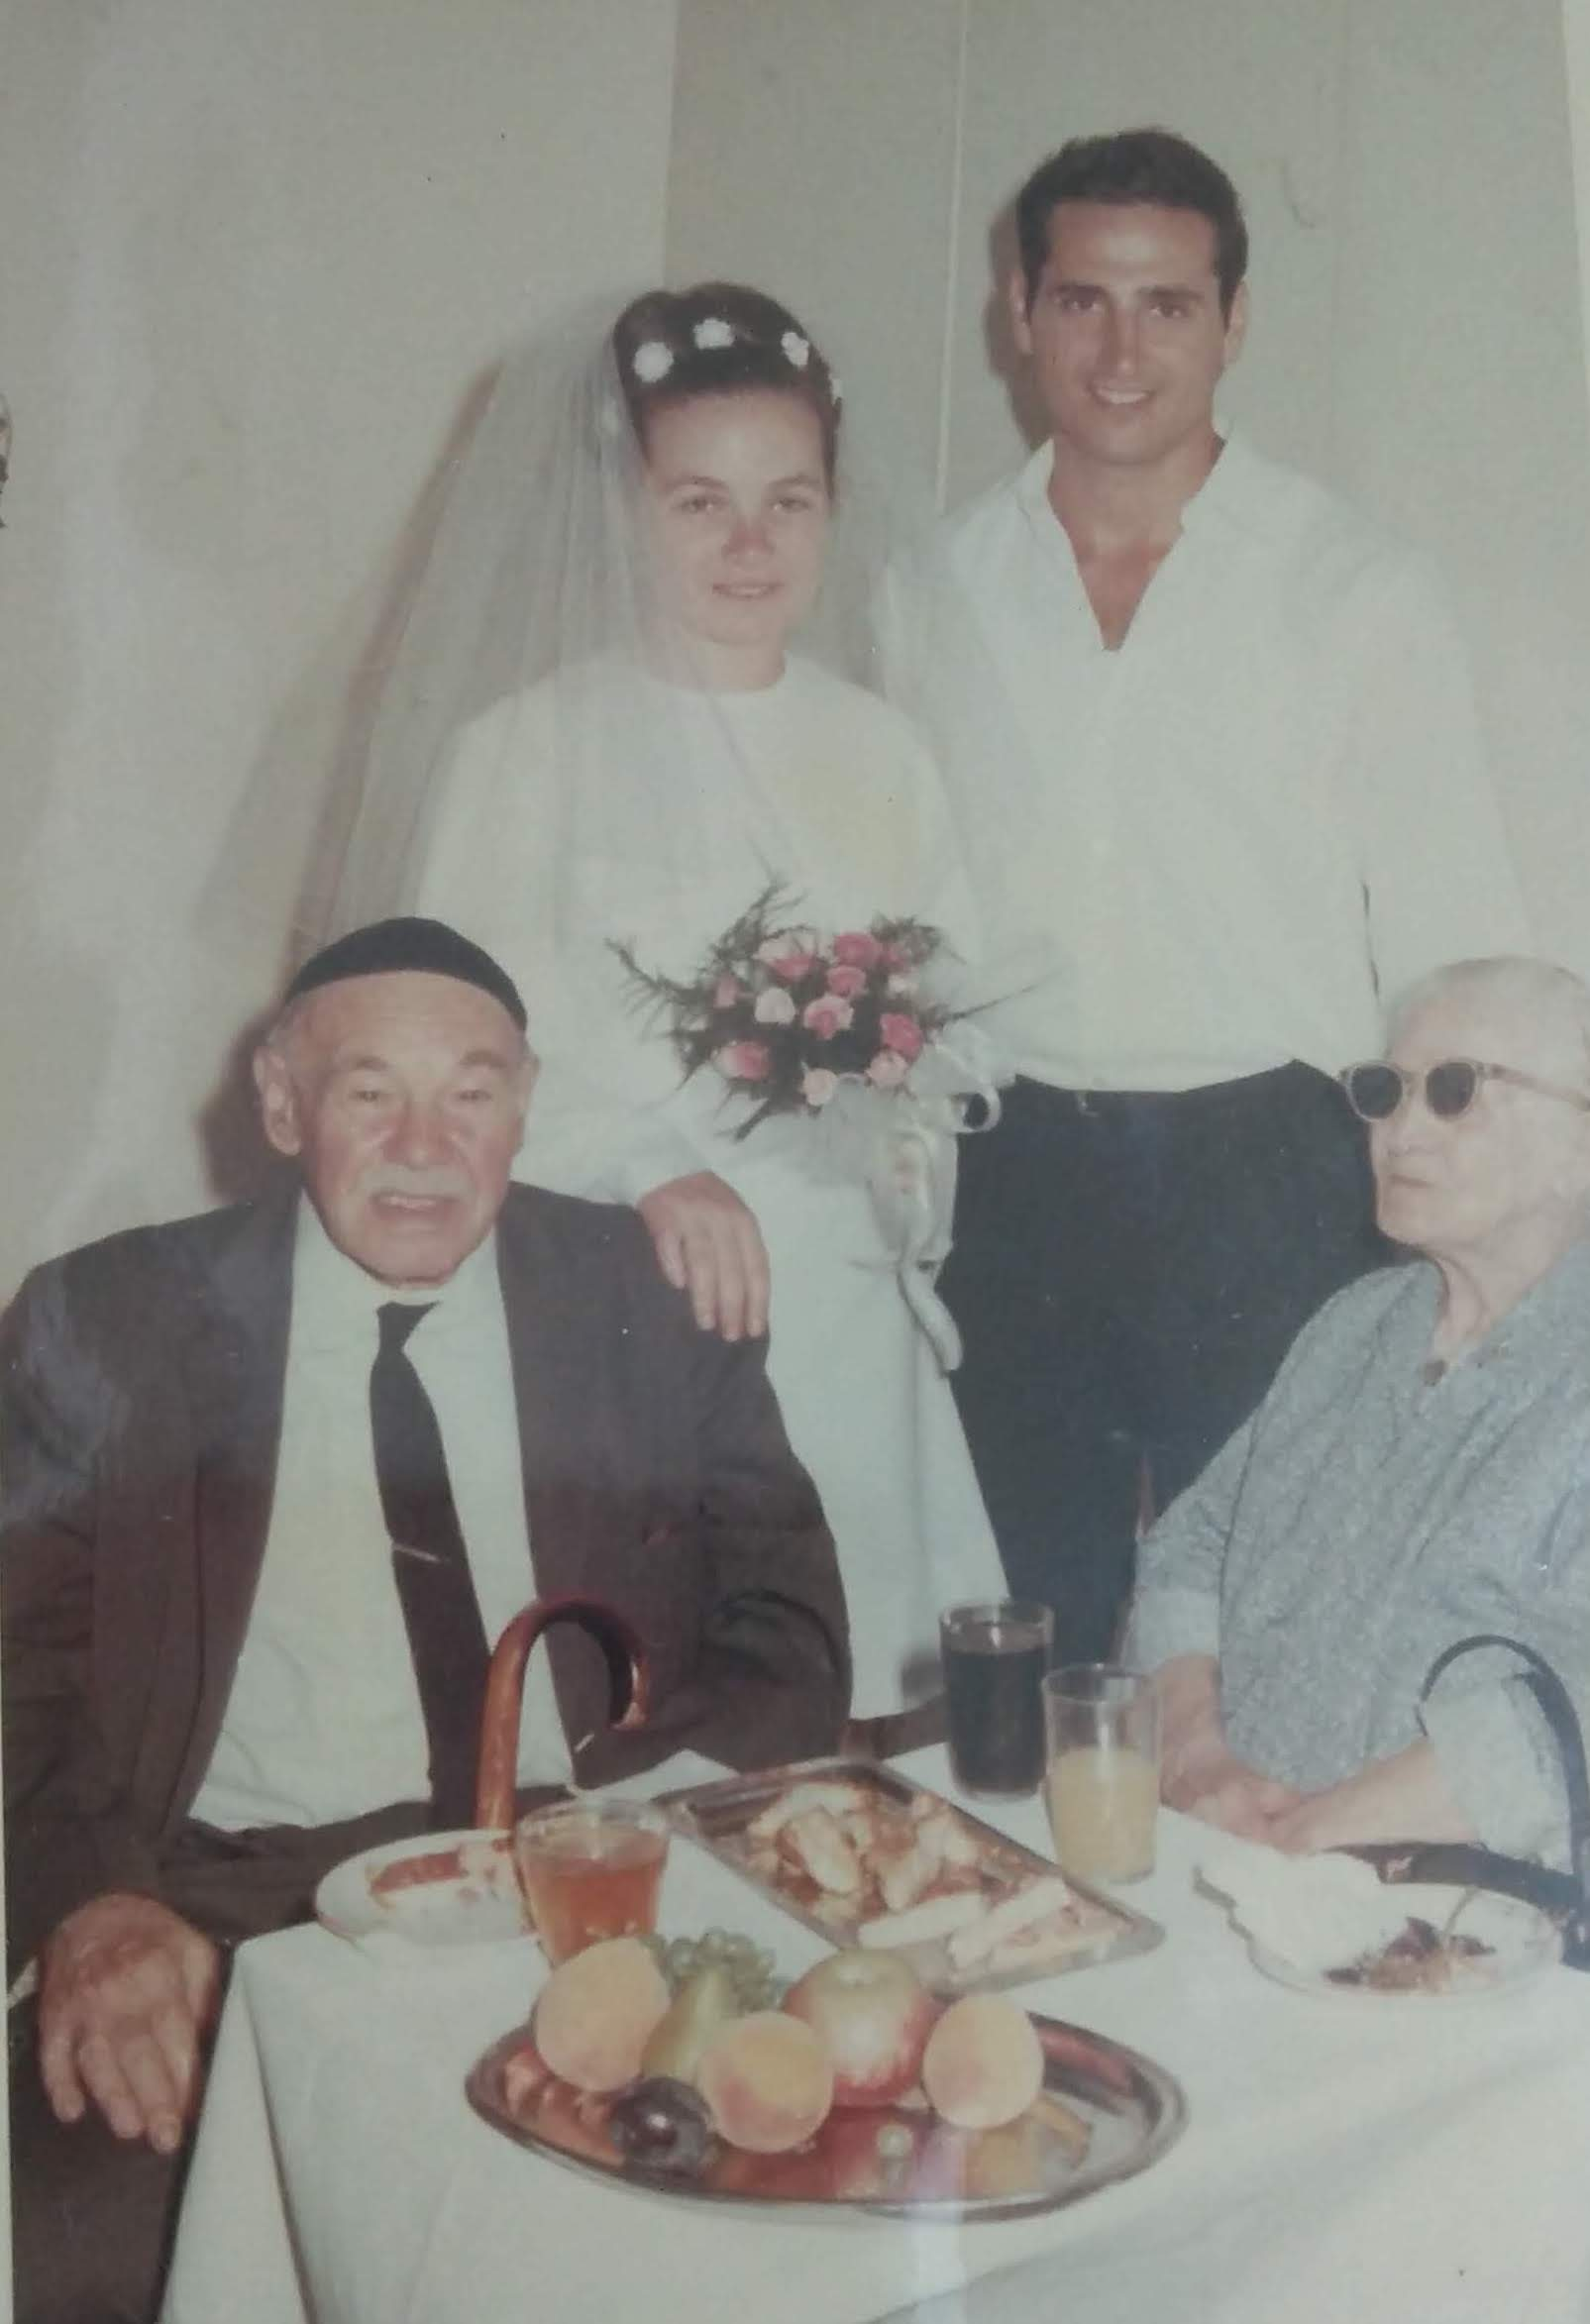 Karni and David at their wedding with Ya'akov and Leah, 1969.